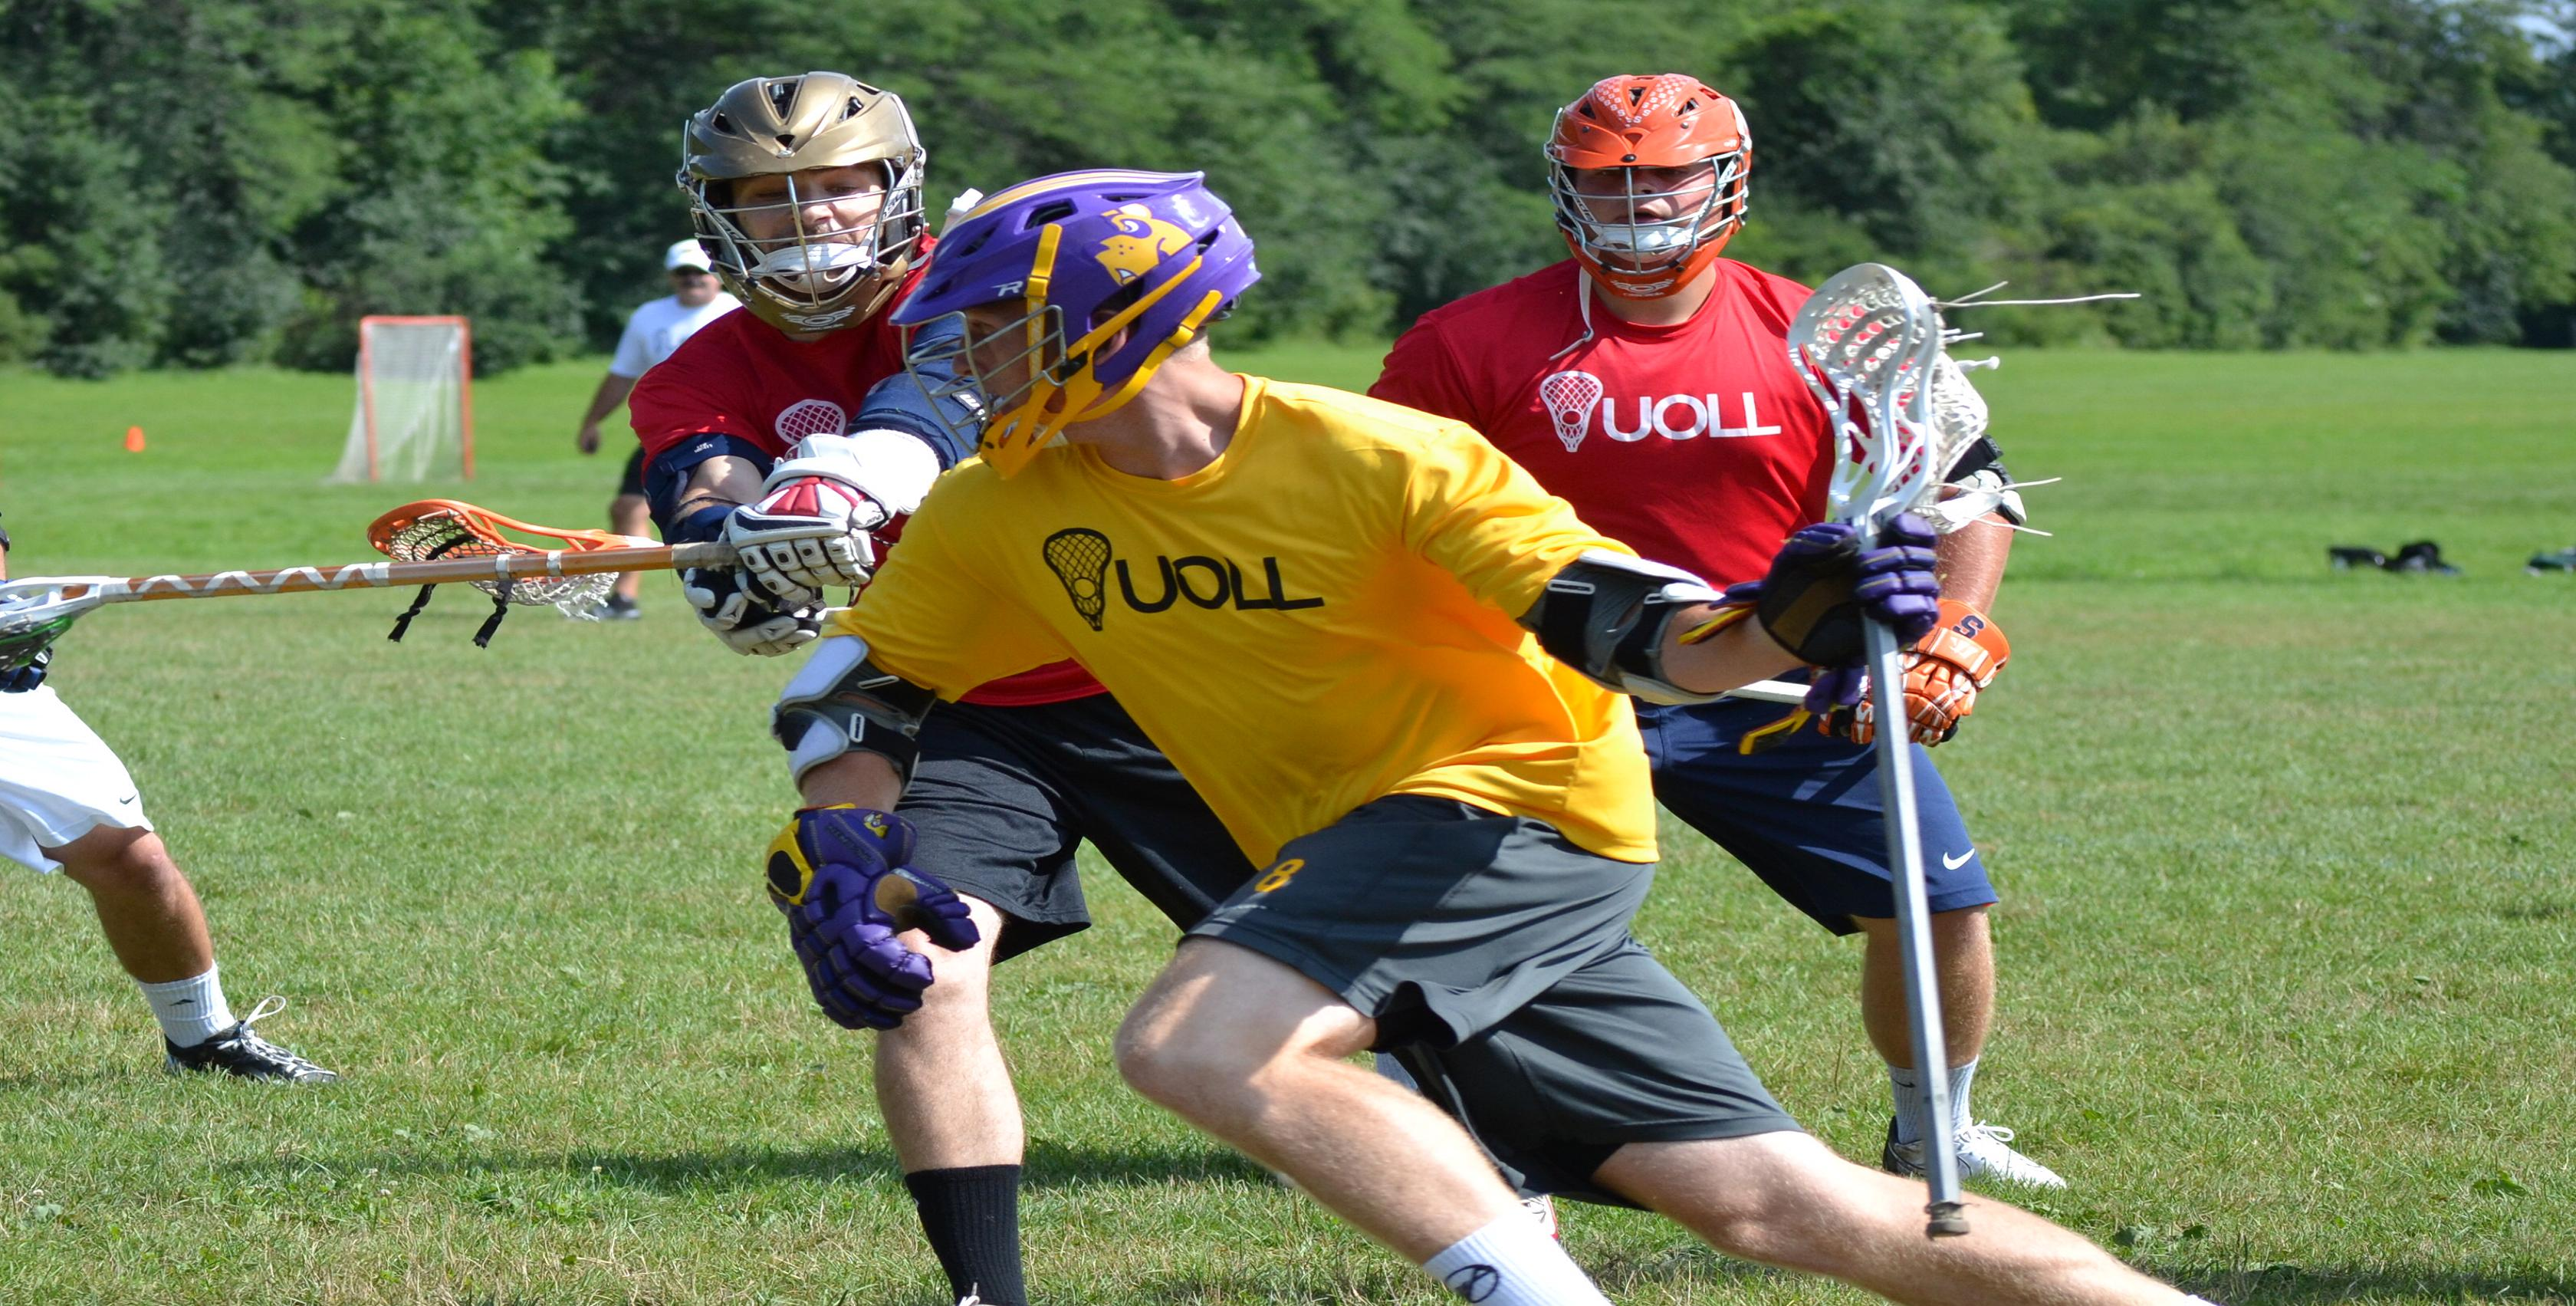 Upstate Outdoor Lacrosse League, Lacrosse, Goal, Field